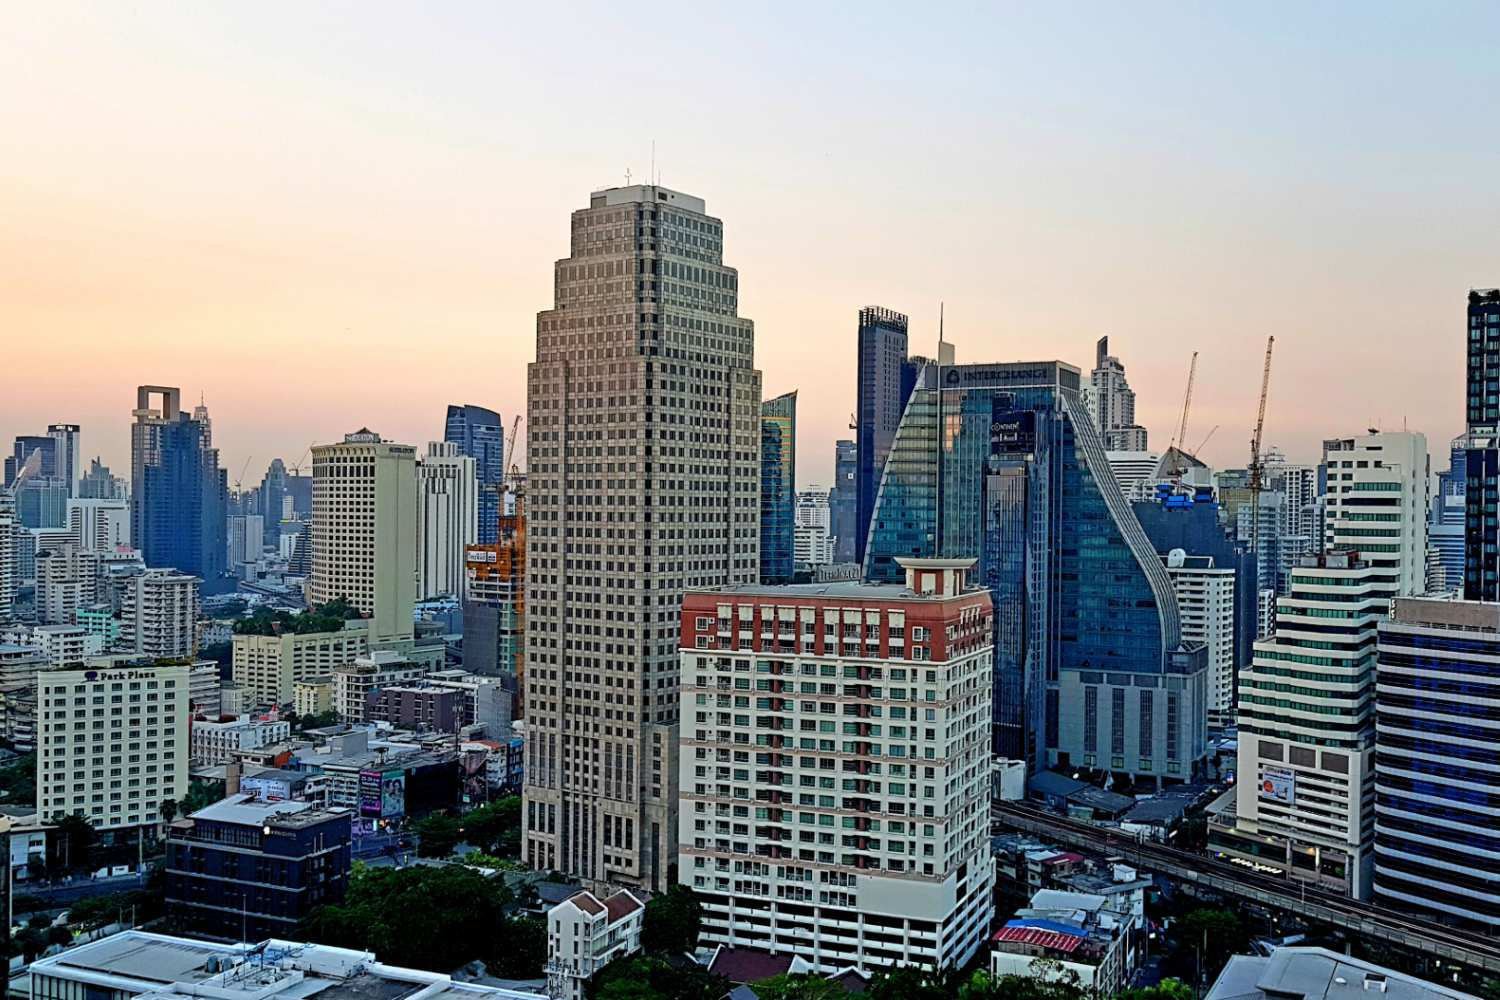 View from 1826 Mixologist & Roof Top Bar in Bangkok